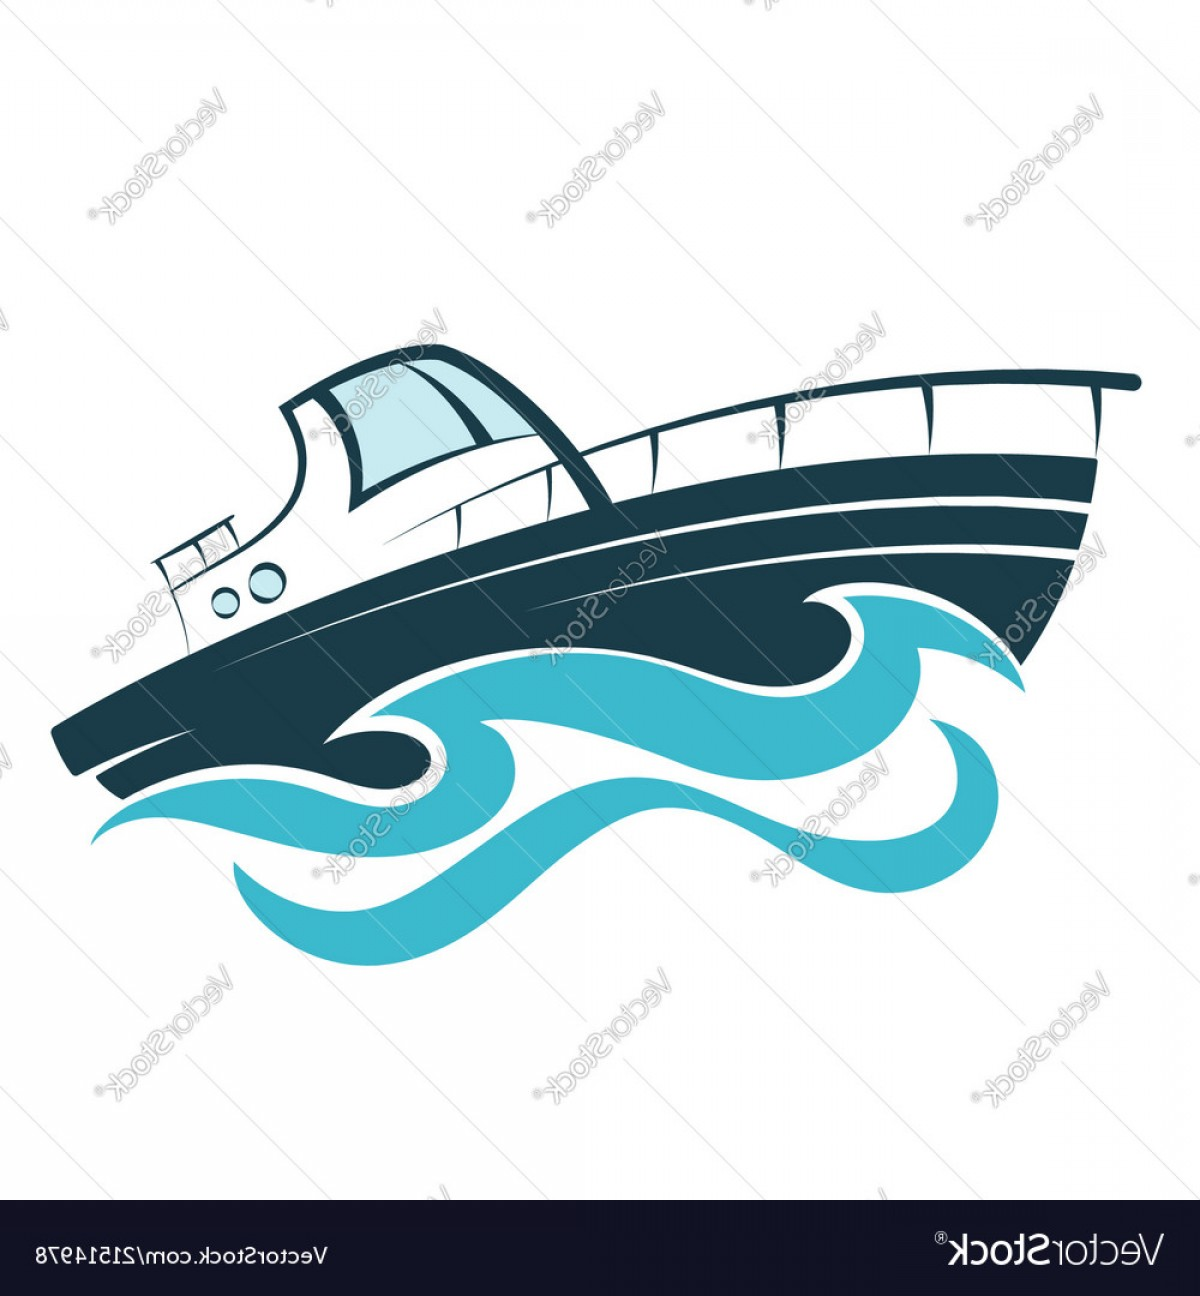 Waves With Cruise Ship Silhouette Vector: Boat On The Wave Vector